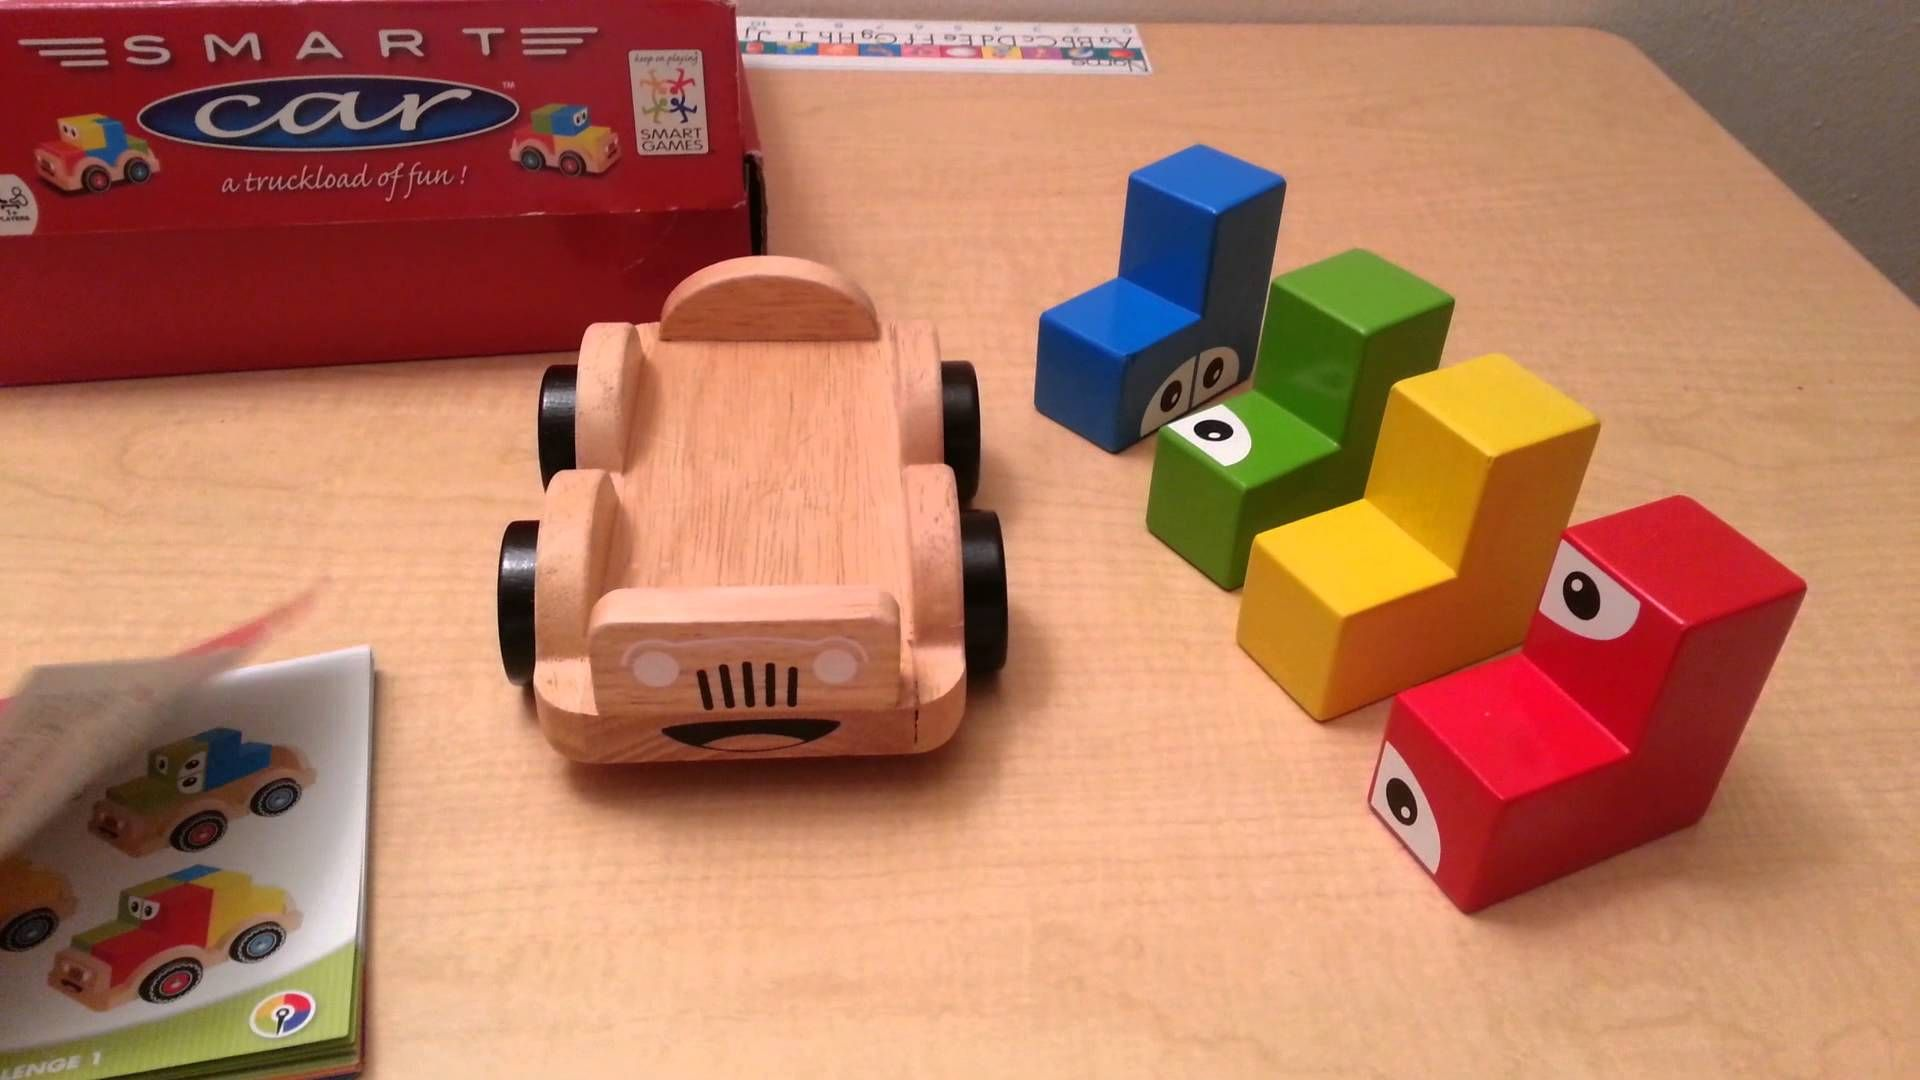 Educational car toys  Smart Car by Smart Games Children Educational Logic ToyGame